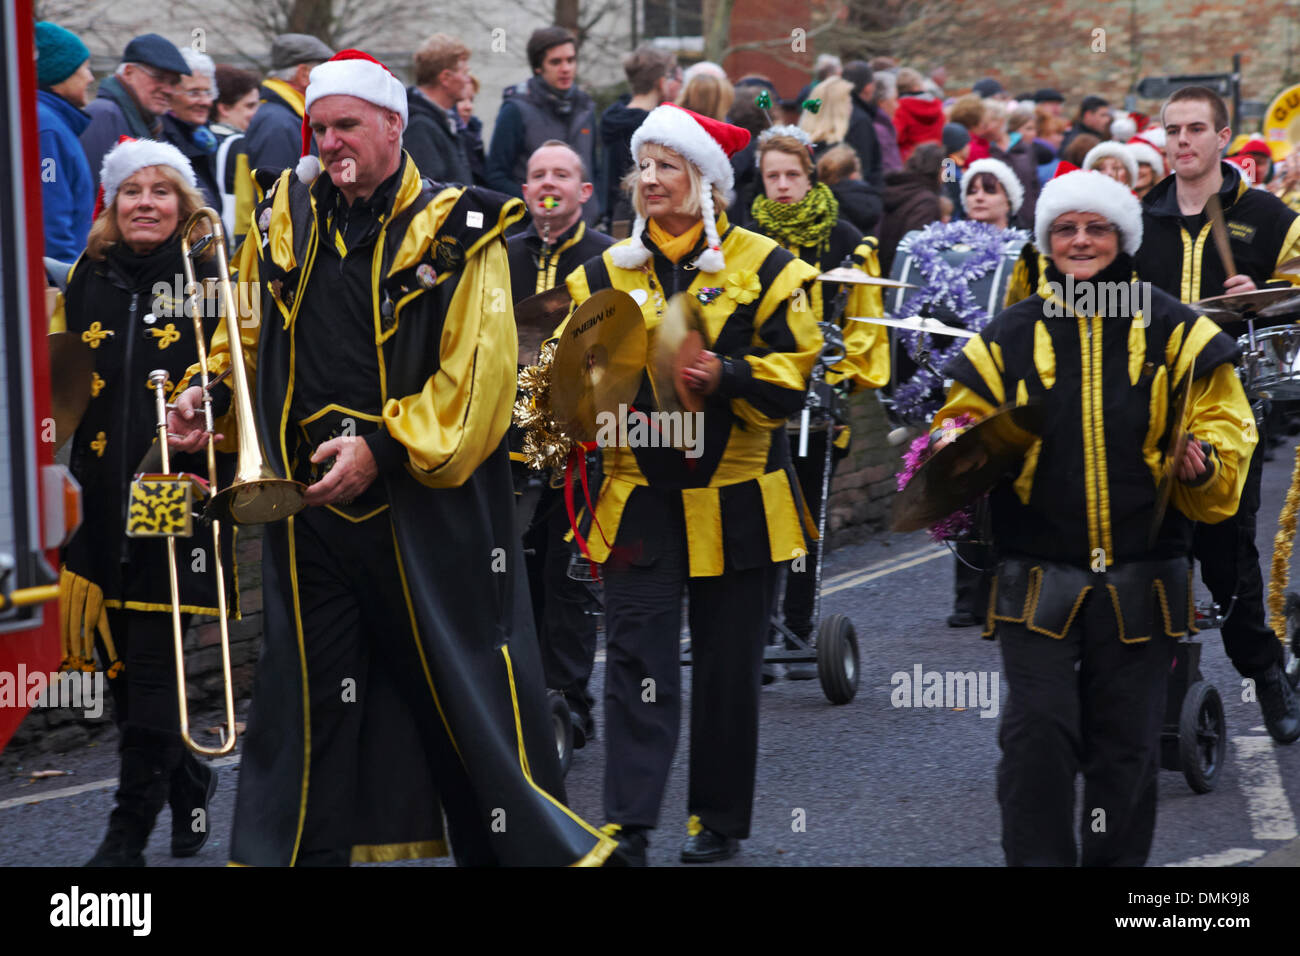 Wimborne, Dorset, UK. 14th December 2013. Crowds turn out to watch the 25th Wimborne Save The Children Christmas Parade. Gugge 2000, Gugge2000, Swiss style guggemusik band. Credit:  Carolyn Jenkins/Alamy Live News Stock Photo